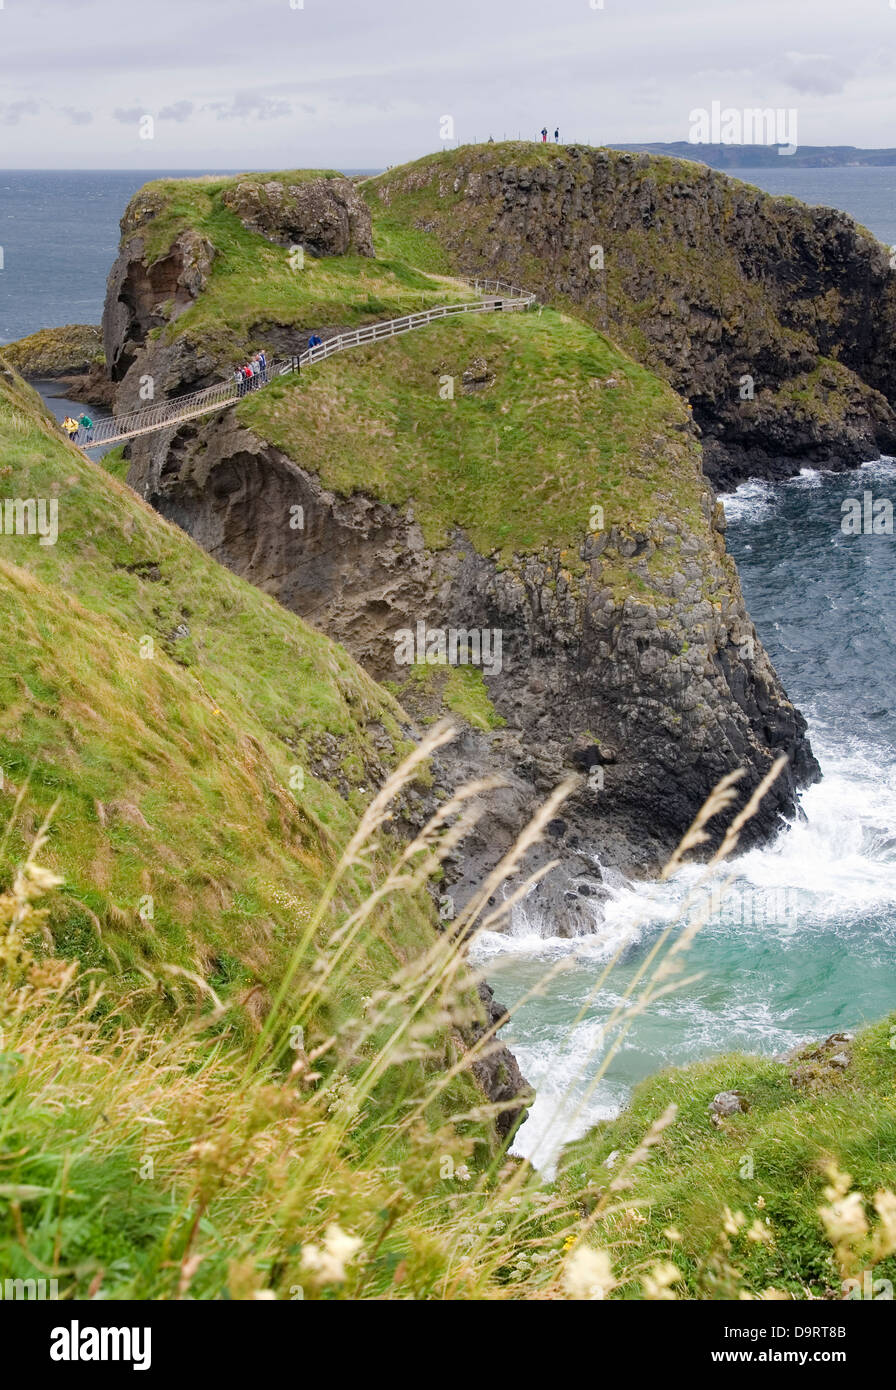 Rope bridge in Carrick-a-Rede, in 'Causeway Route'. Northern Ireland, United Kingdom, Europe. - Stock Image